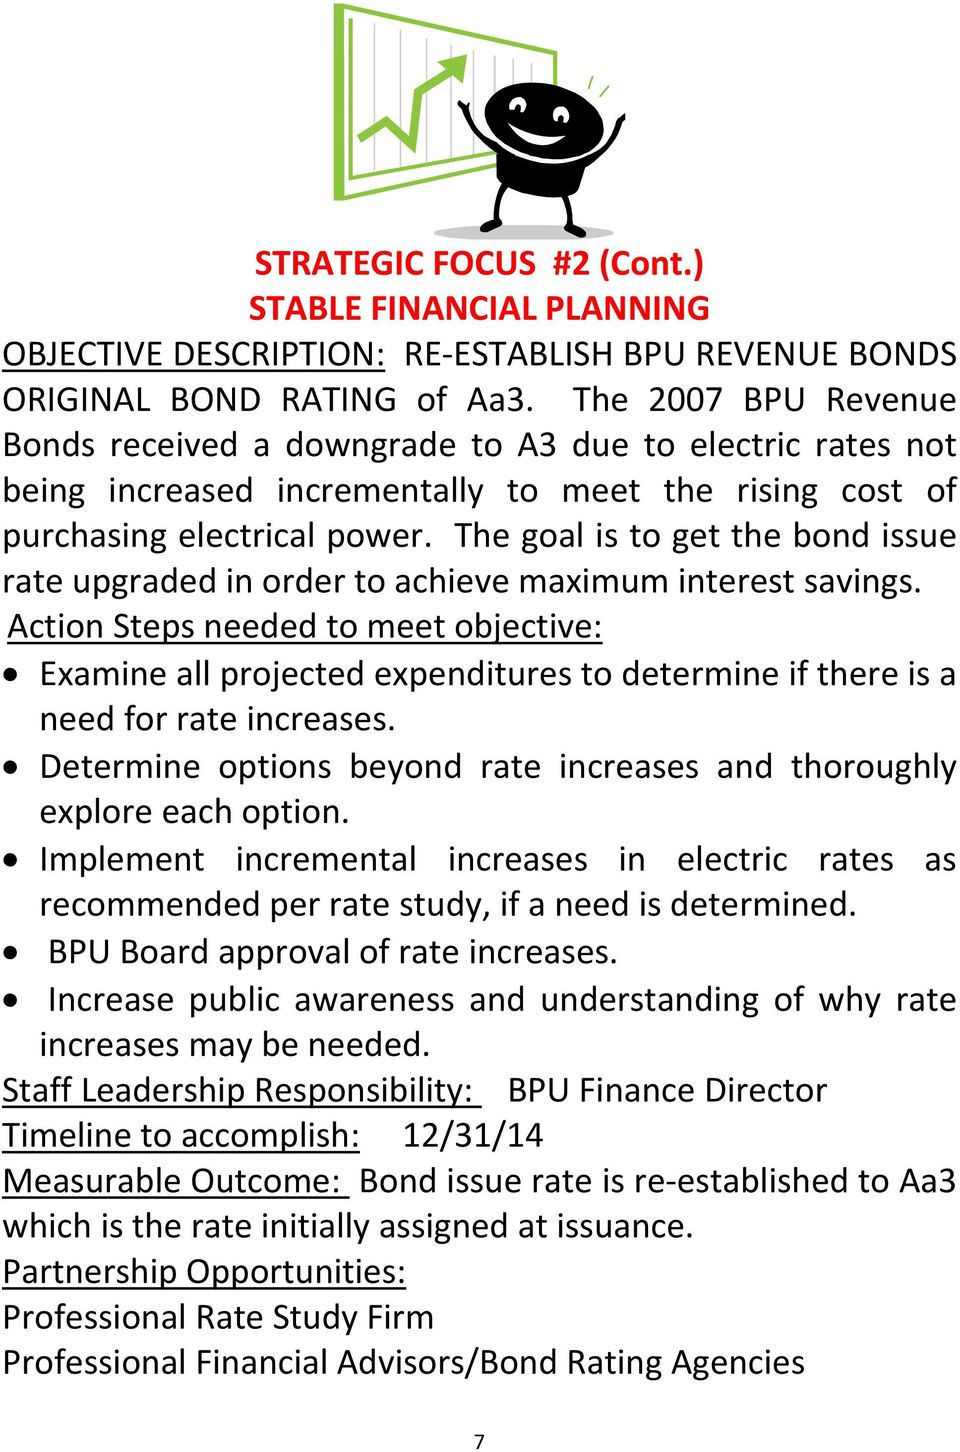 The goal is to get the bond issue rate upgraded in order to achieve maximum interest savings. Examine all projected expenditures to determine if there is a need for rate increases.